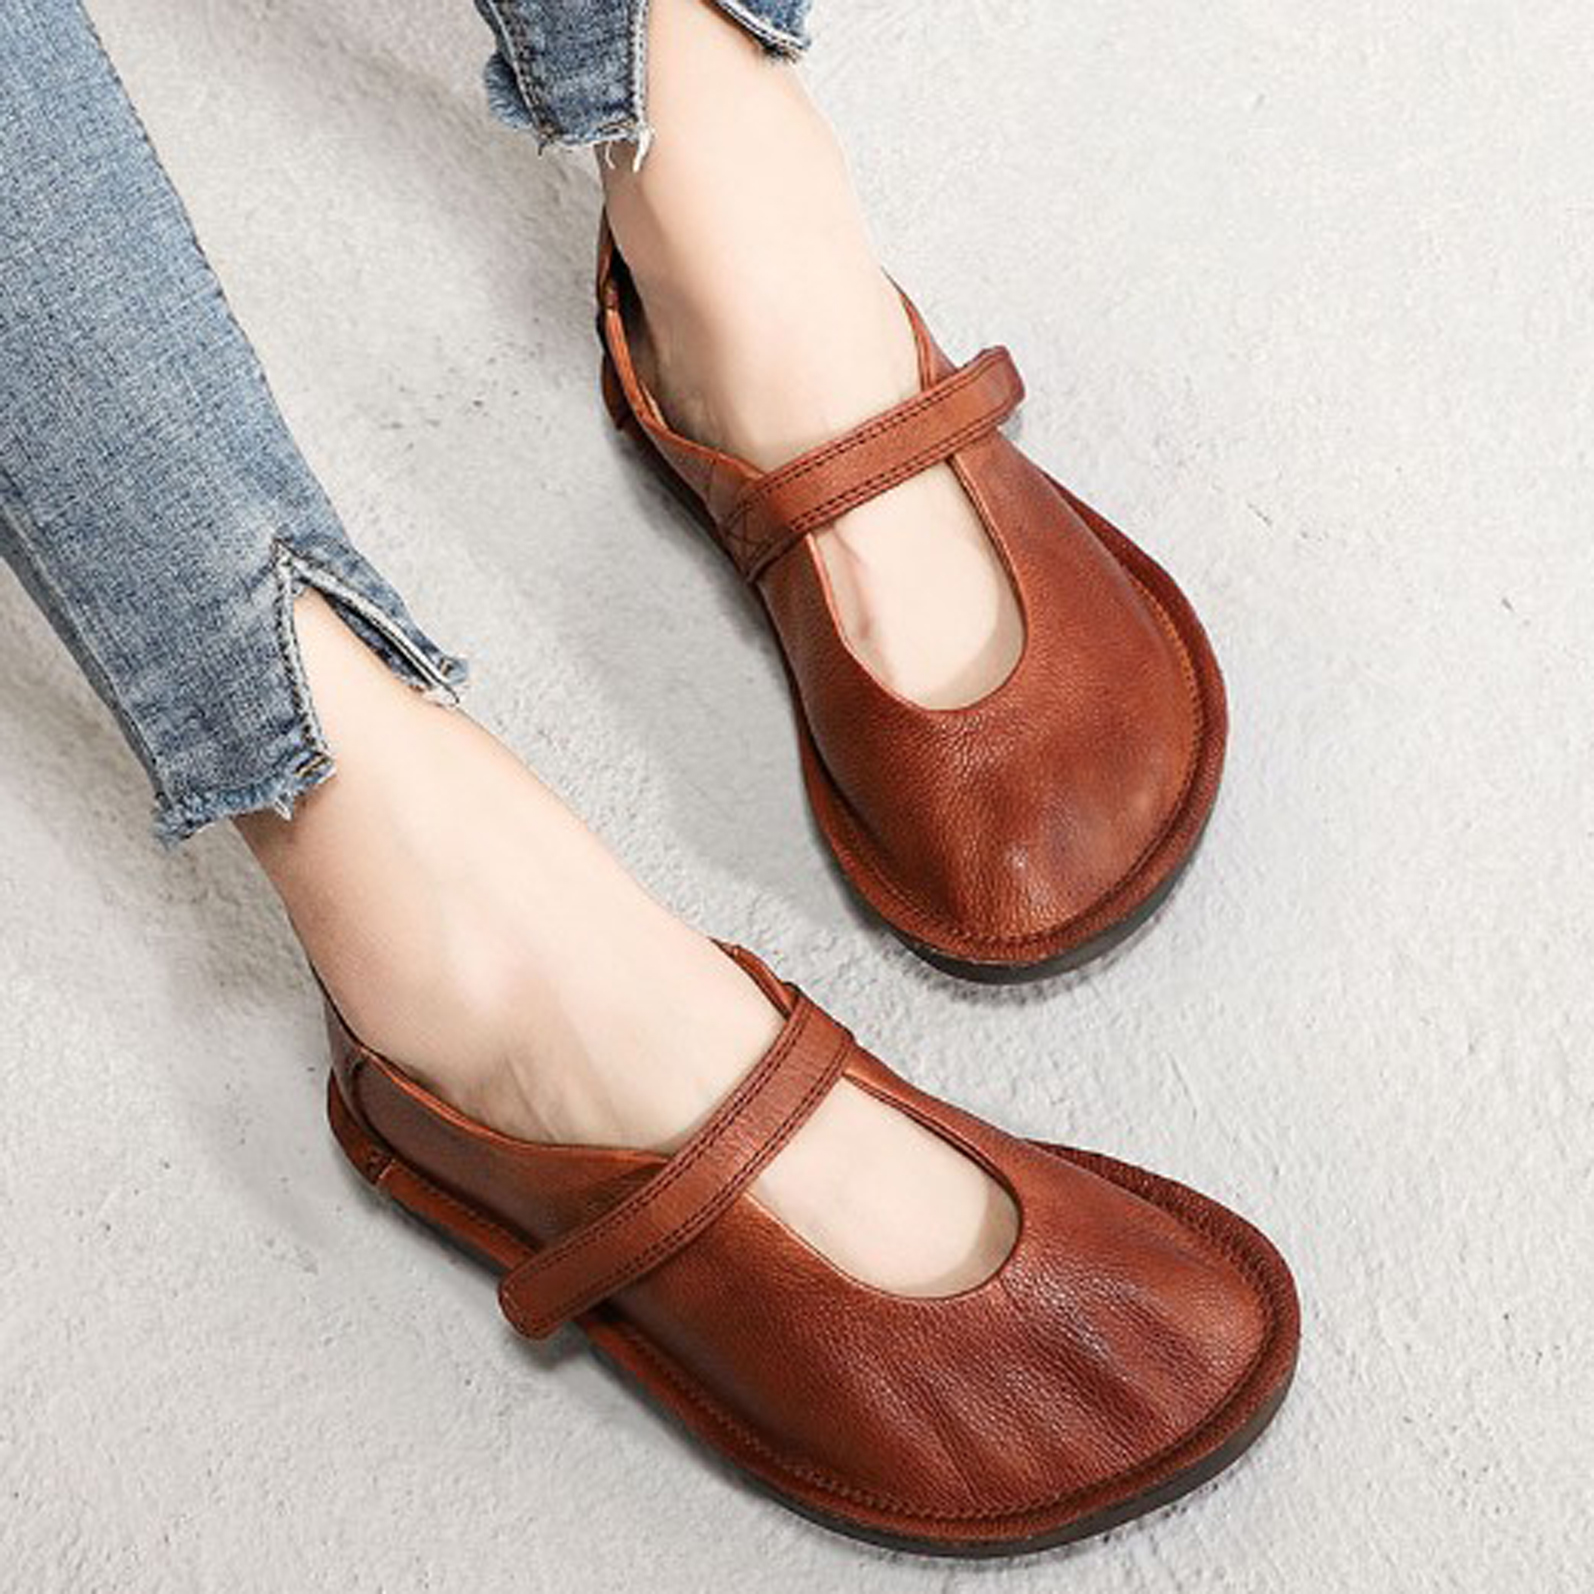 Genuine Leather Women Flats Casual Barefoot Female Vintage Hook Loop Shoes Women Handmade  Ballerinas  Footwear Sneaker 2019